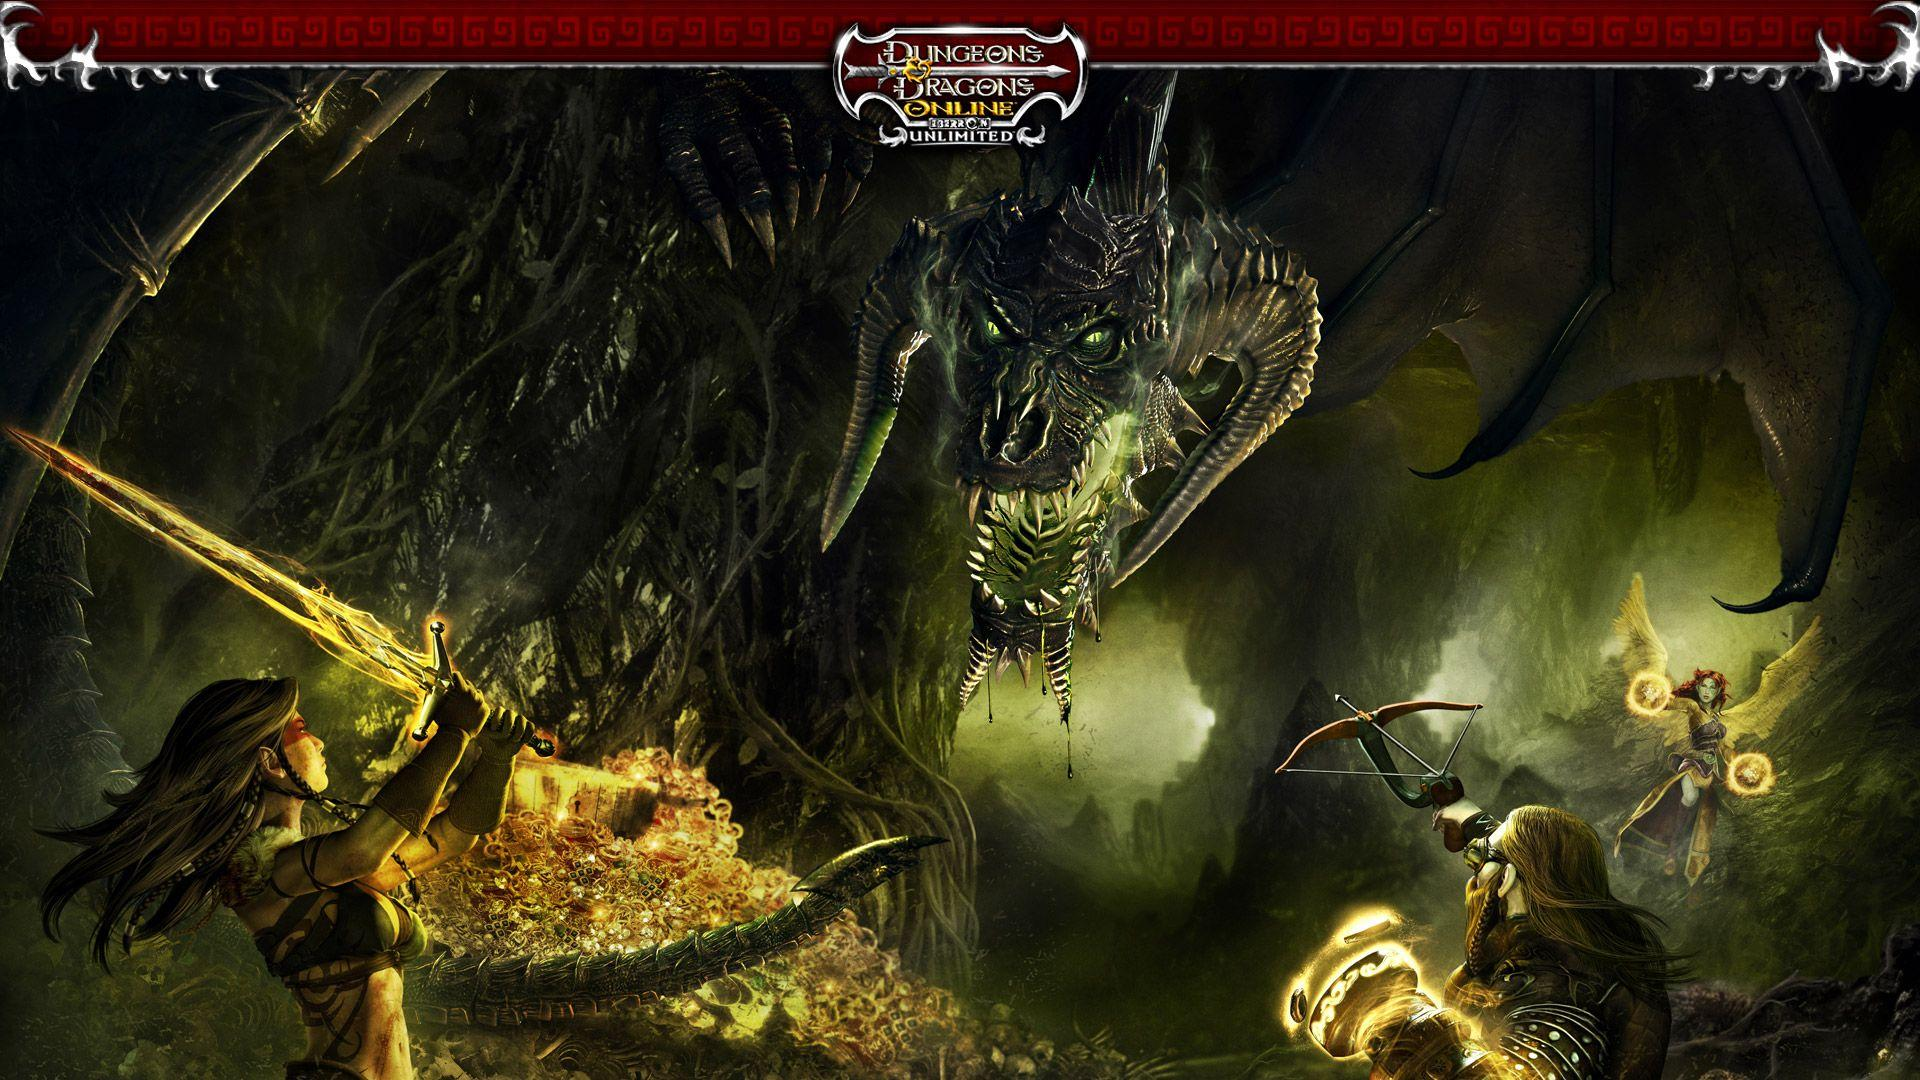 Dungeons And Dragons Wallpapers HD - wallpaper.wiki